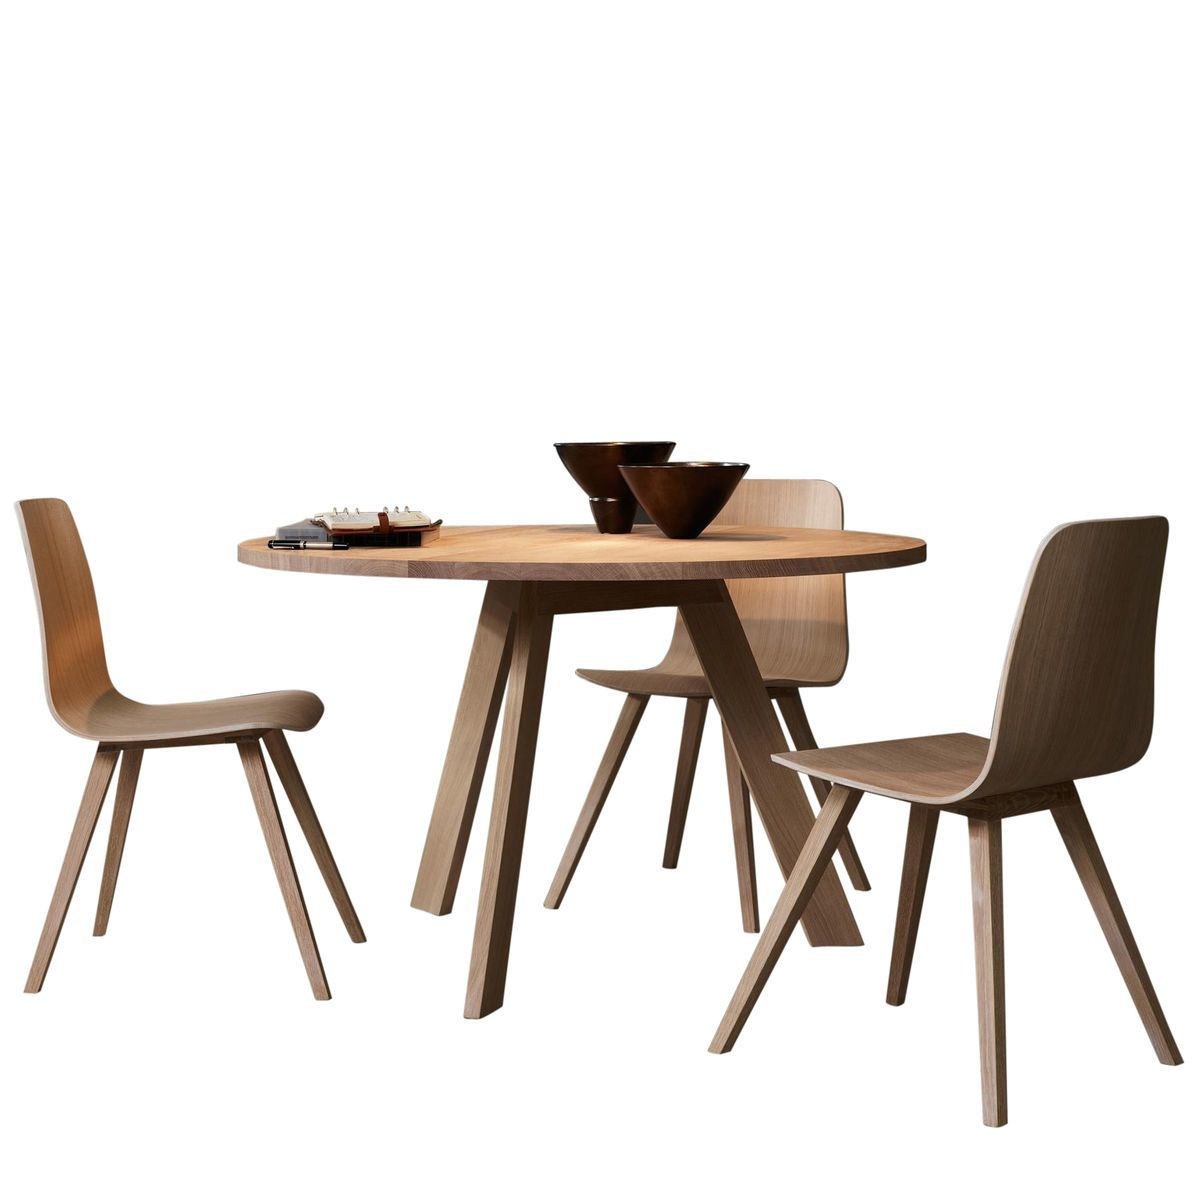 Tosh solid wood dining table more for Solid wood dining table